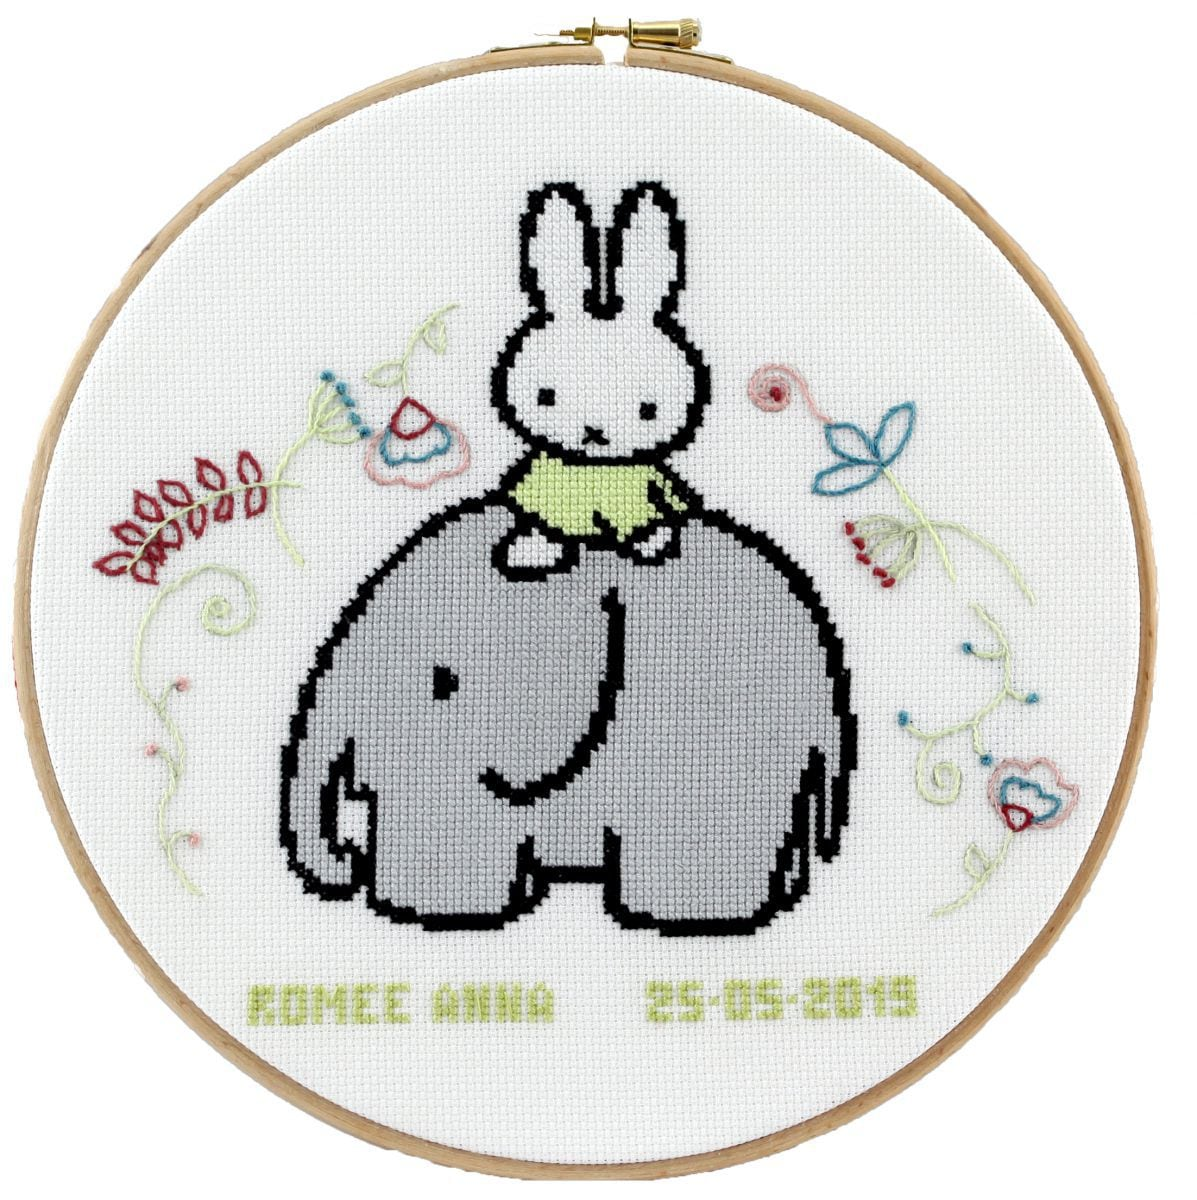 embroidery kit miffy birthday sampler dick bruna